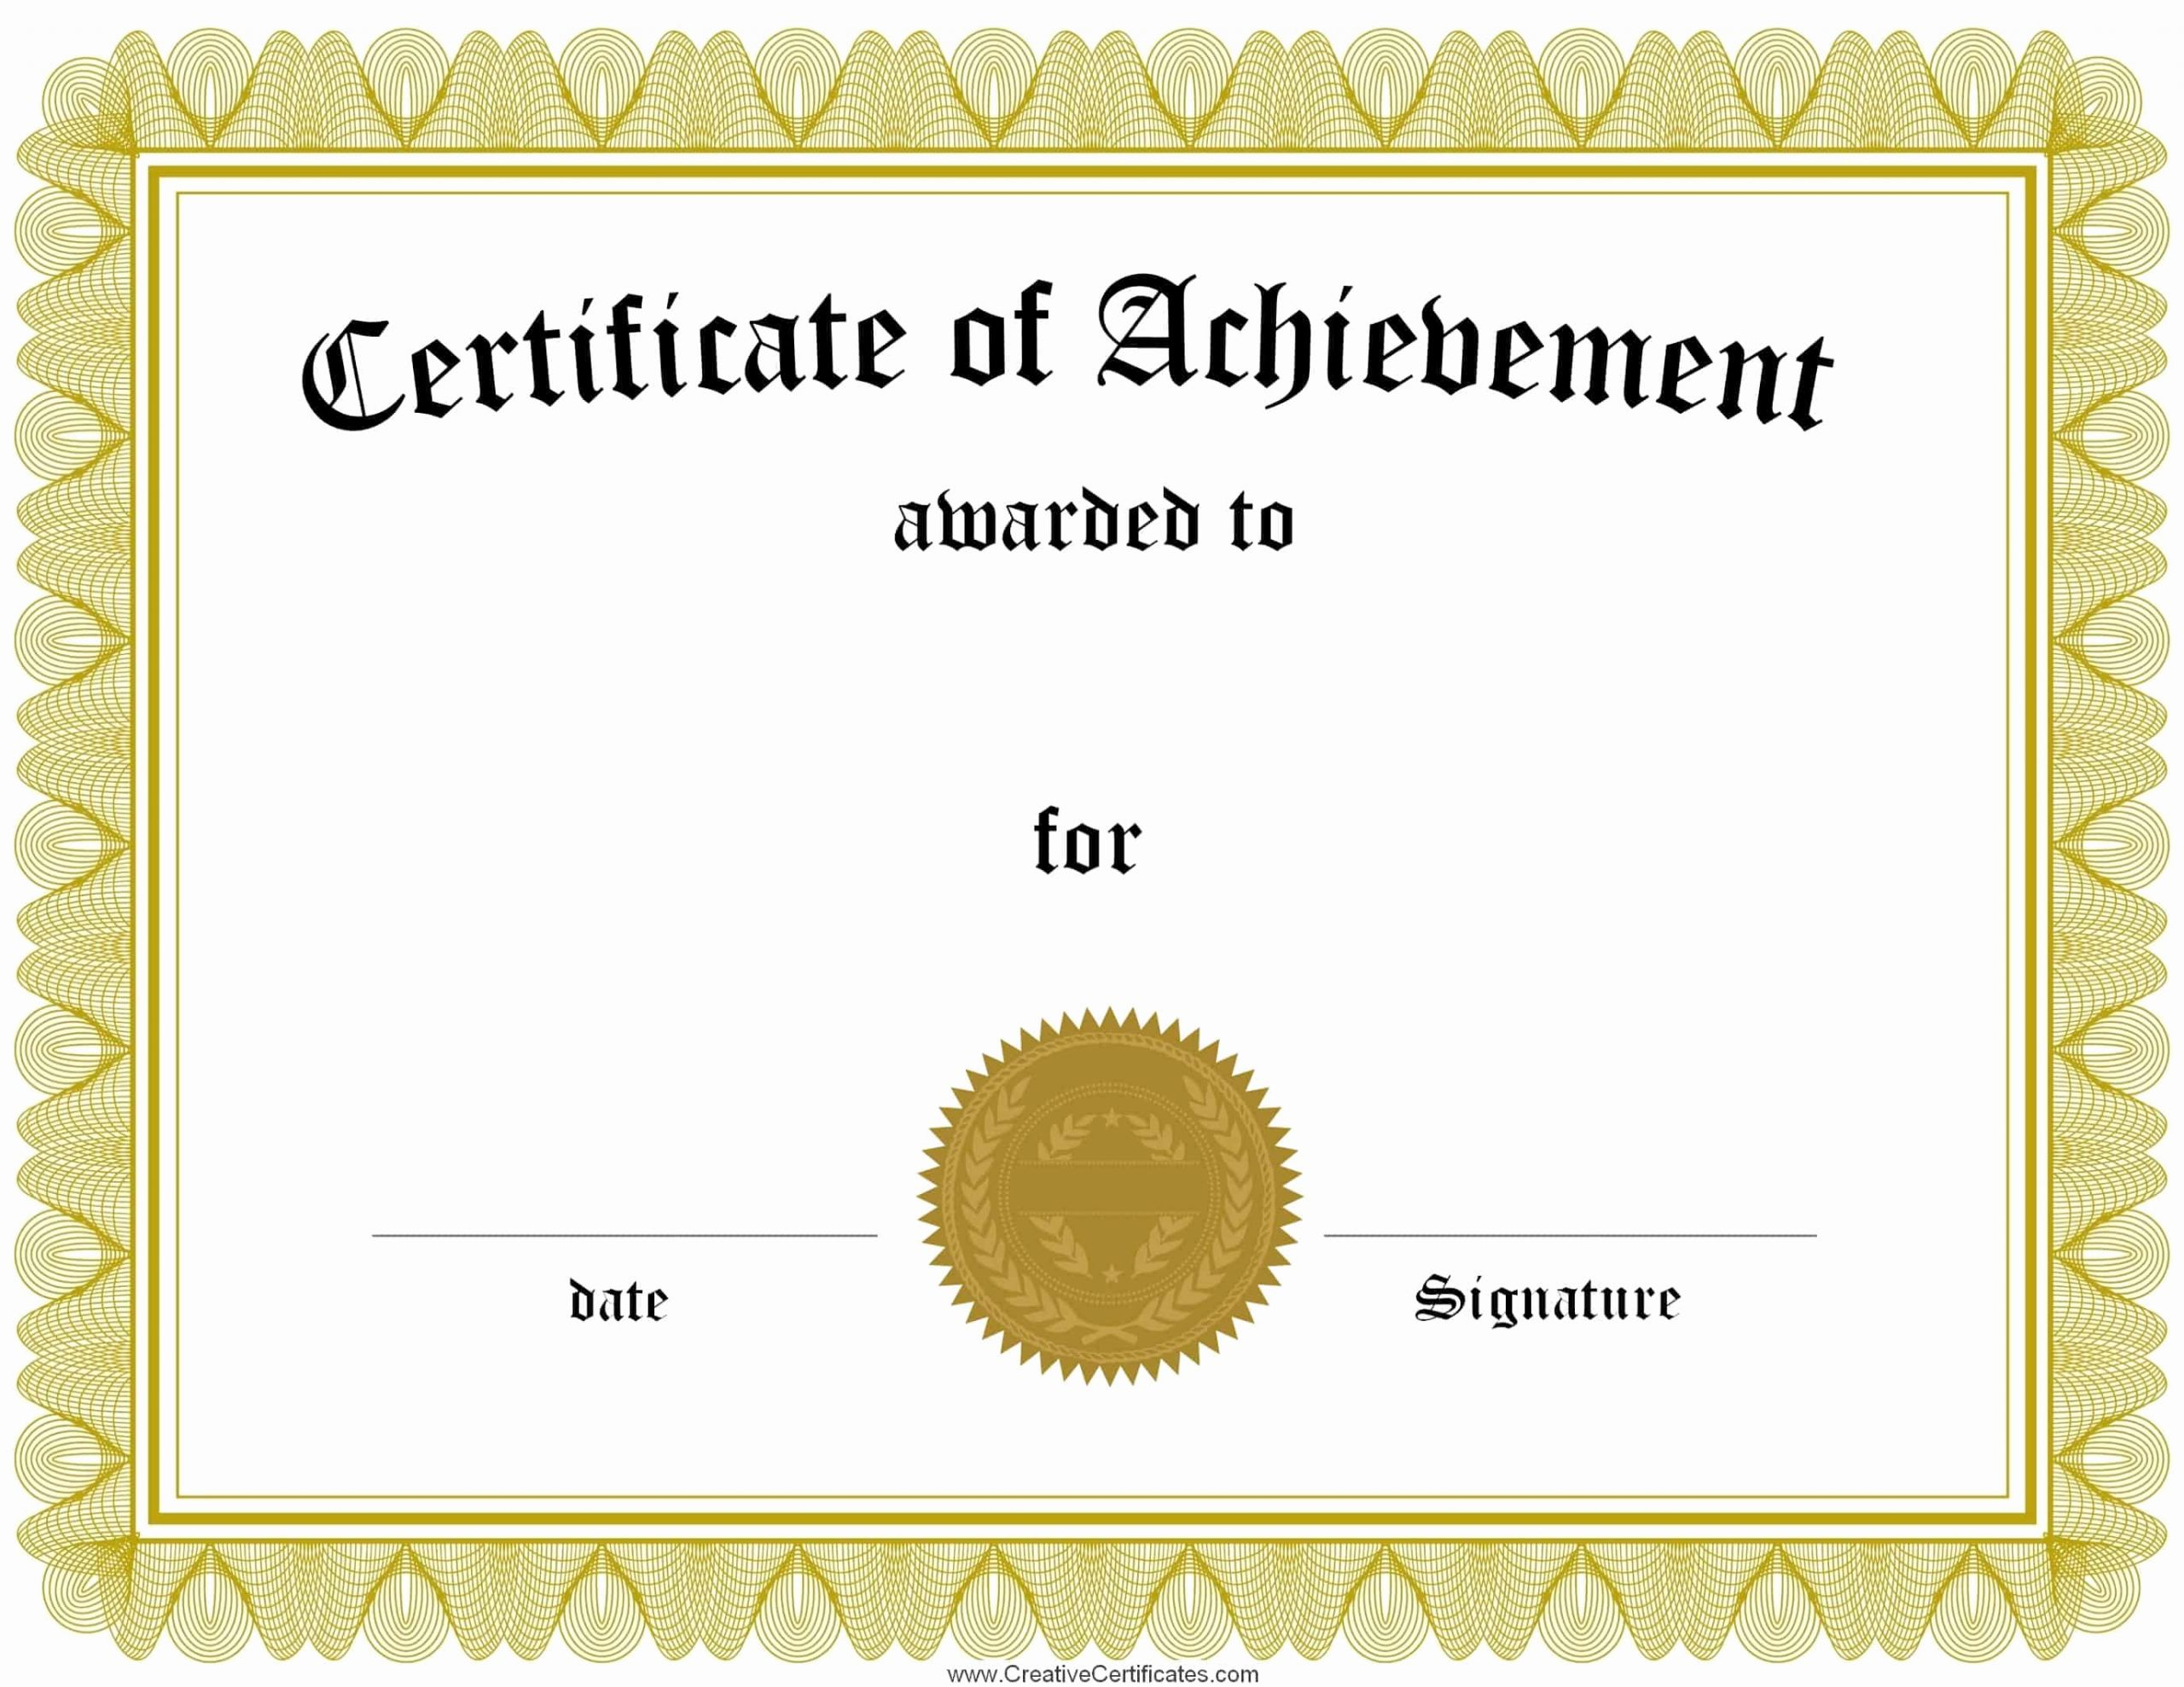 Award Certificate Template Free Download Lovely Free Customizable Certificate Of Achievement